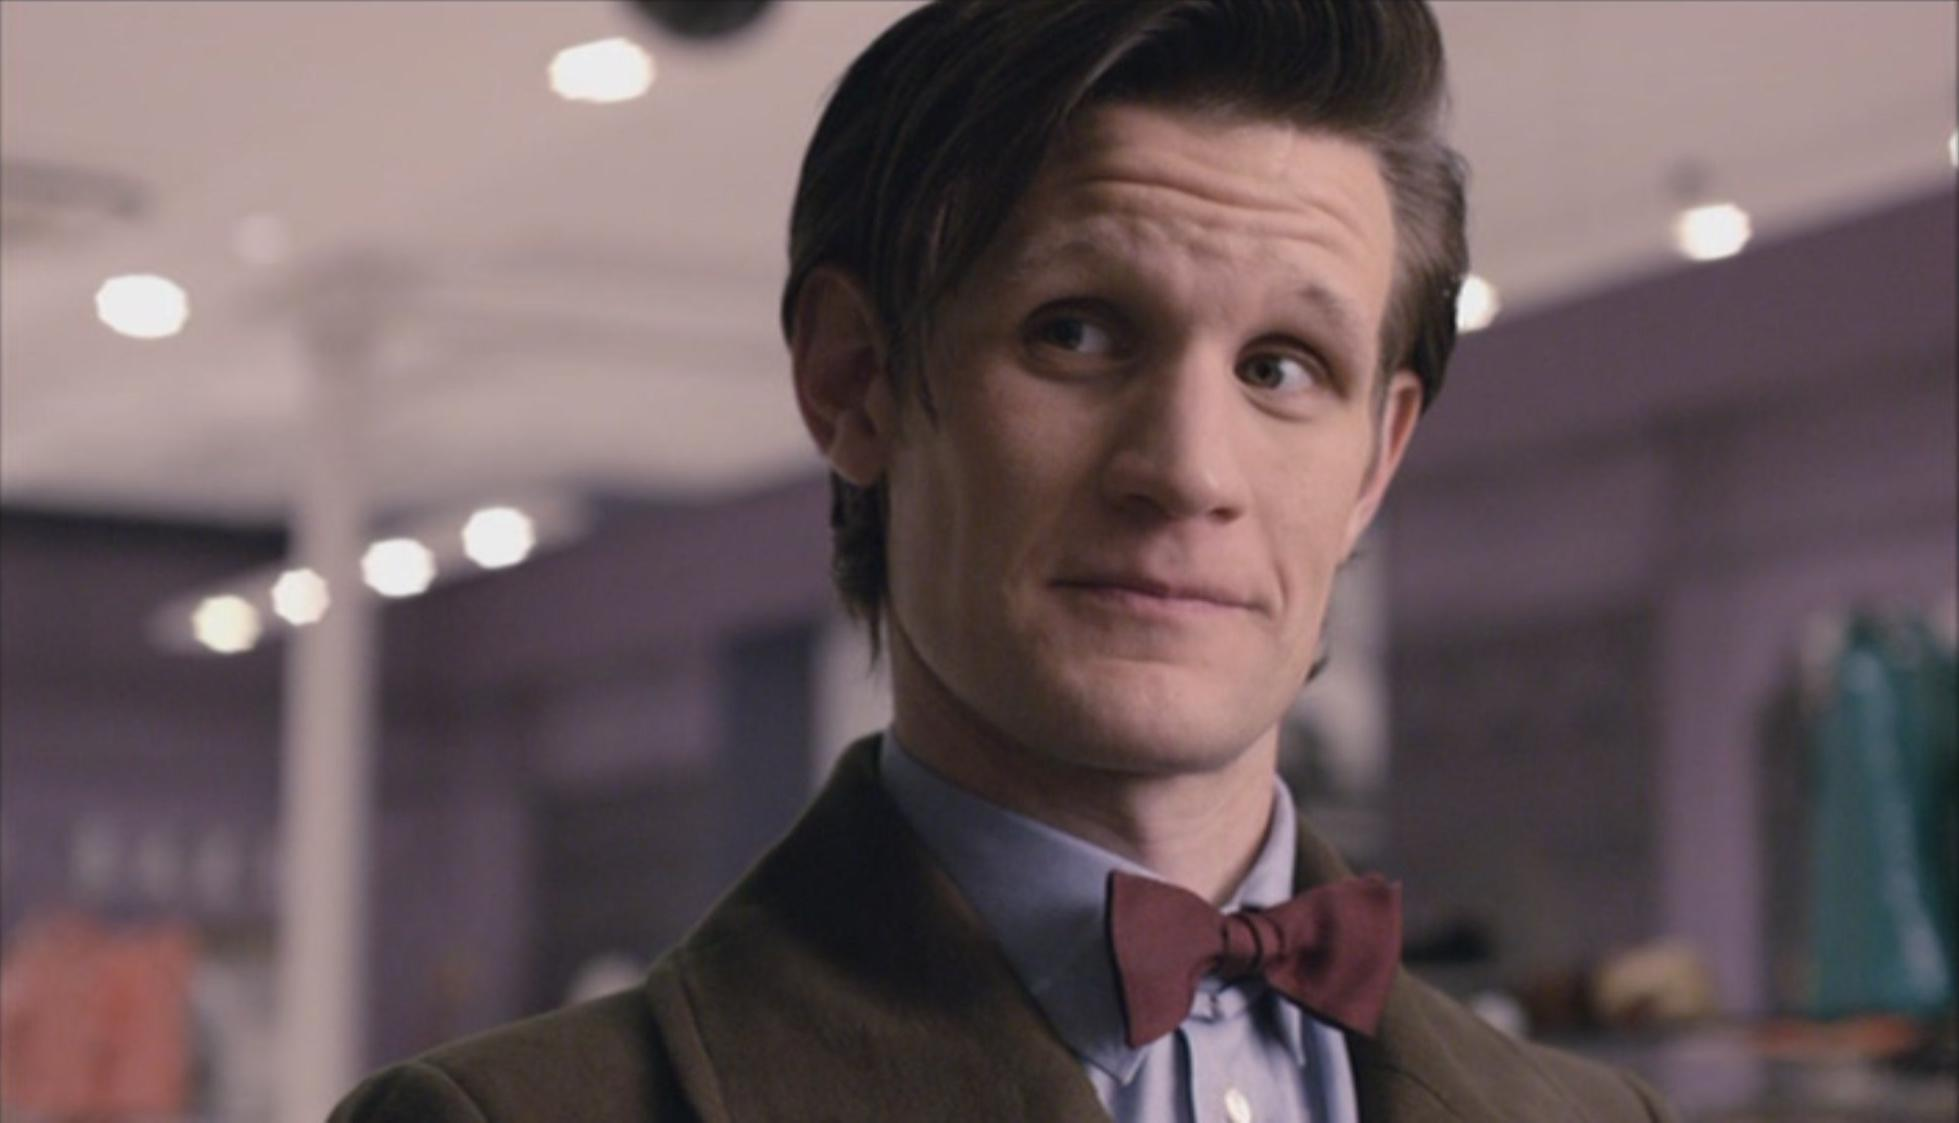 matt smith vkmatt smith doctor who, matt smith lily james, matt smith 2016, matt smith the crown, matt smith 2017, matt smith terminator, matt smith photoshoot, matt smith инстаграм, matt smith art, matt smith haircut, matt smith theocracy, matt smith paintings, matt smith vk, matt smith hairstyle, matt smith american psycho, matt smith gallery, matt smith jenna louise coleman, matt smith wallpaper, matt smith dating, matt smith kinopoisk